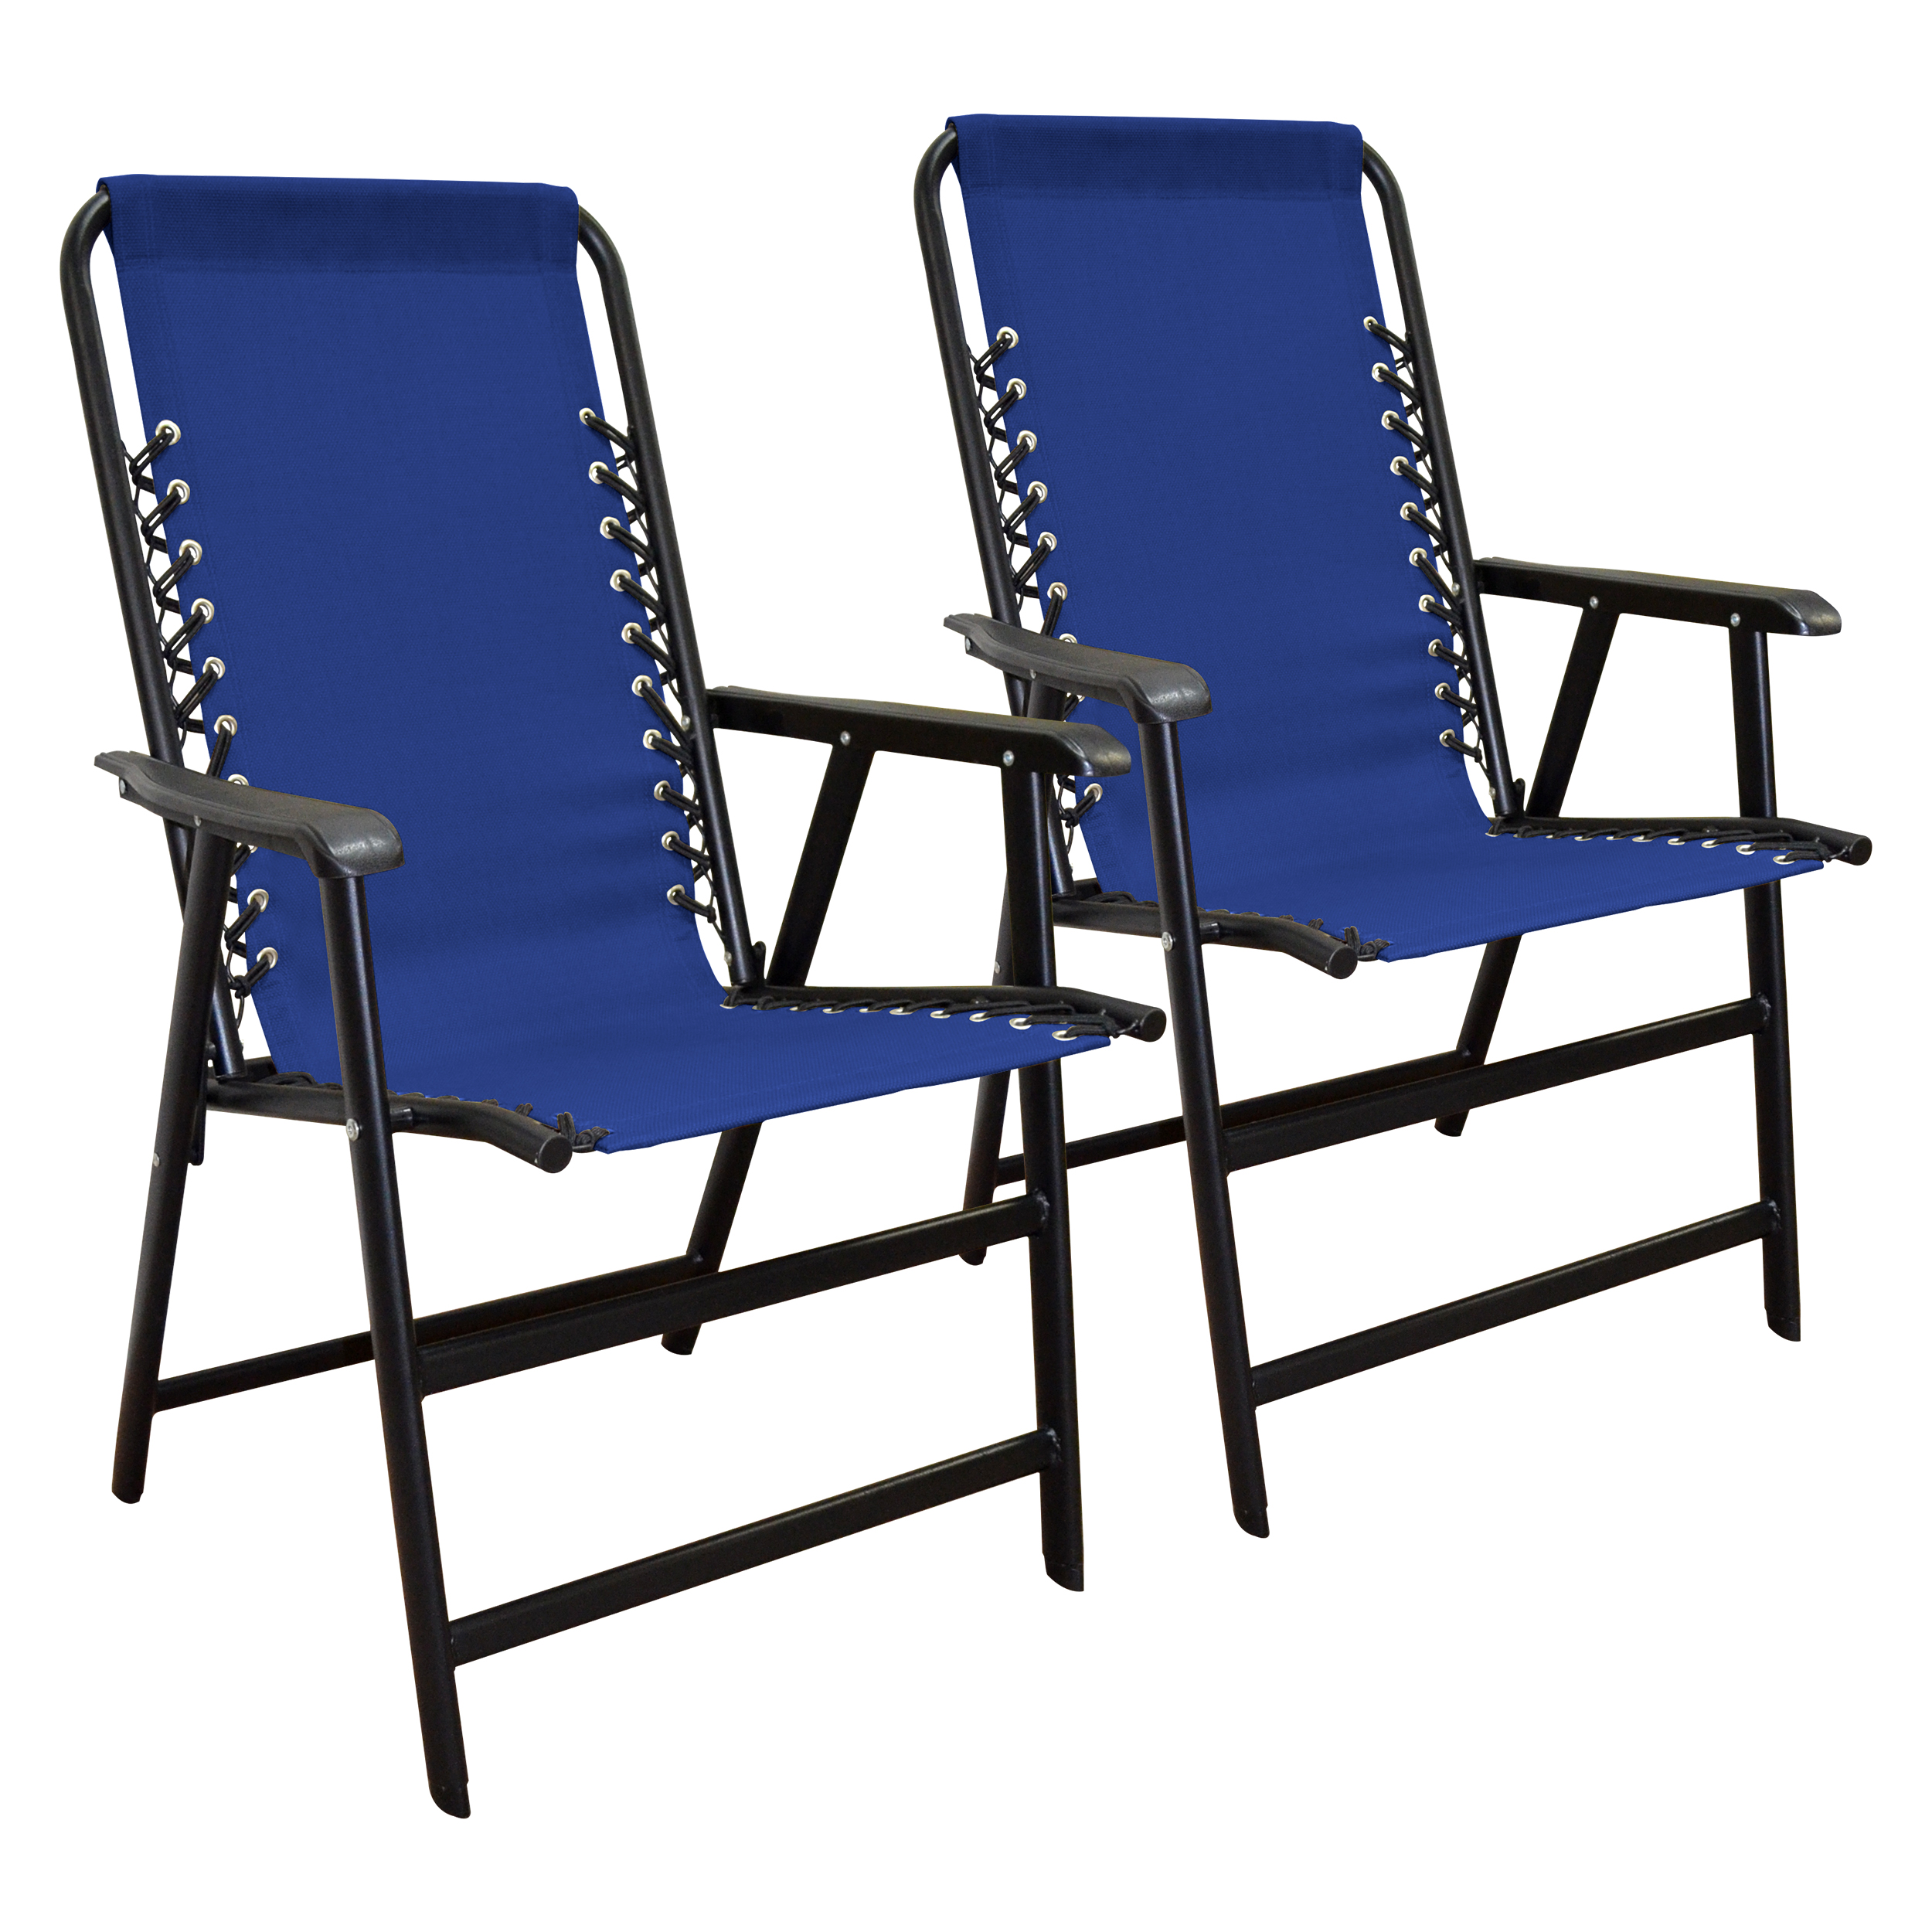 Suspension Folding chair Blue 2PACK